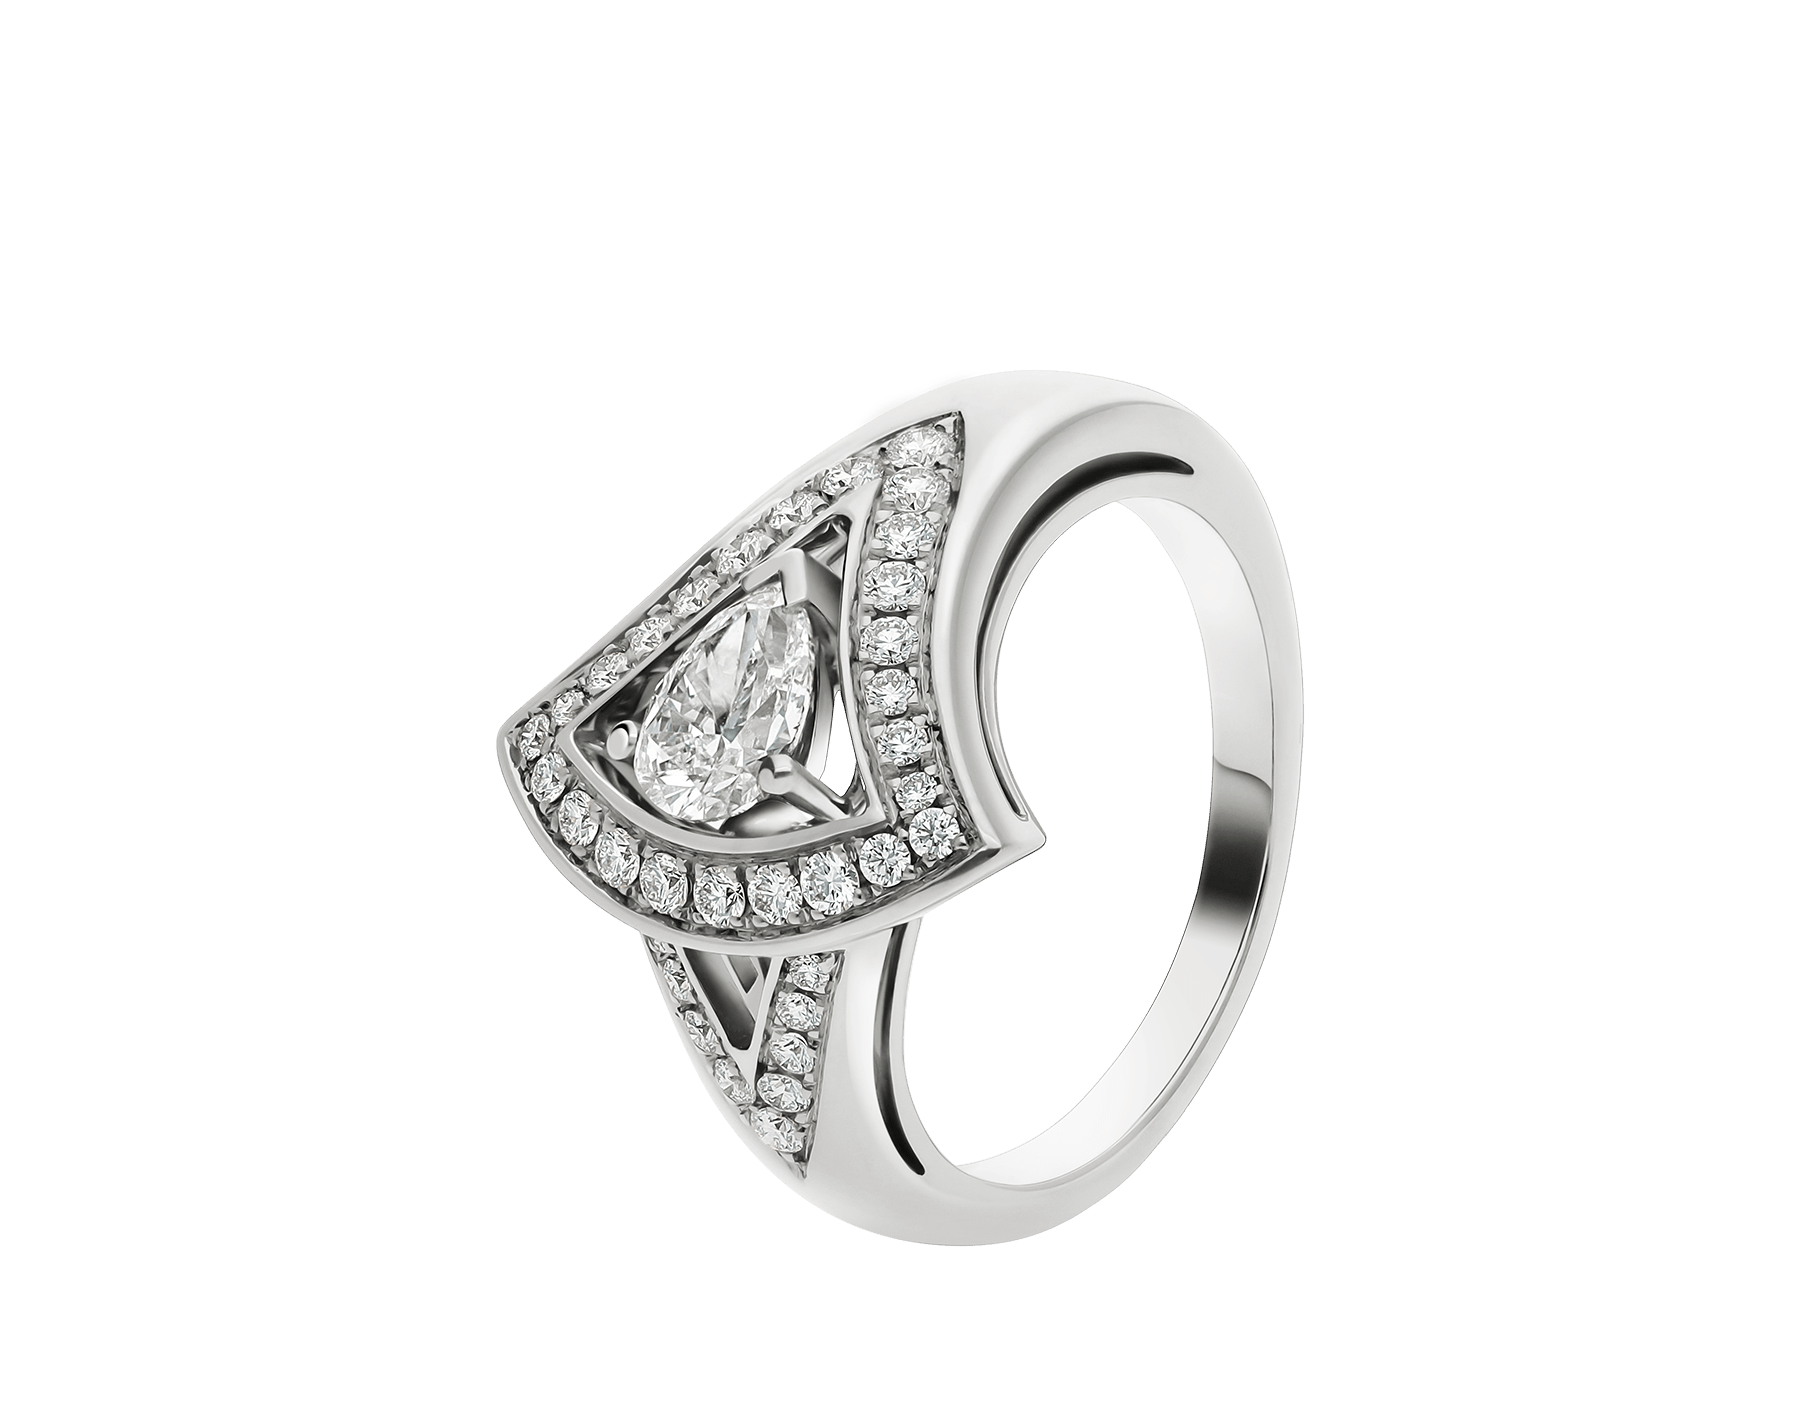 DIVAS' DREAM openwork 18 kt white gold ring set with a central pear-cut diamond (0.40 ct) and pavé diamonds (0.25 ct) AN858342 image 1